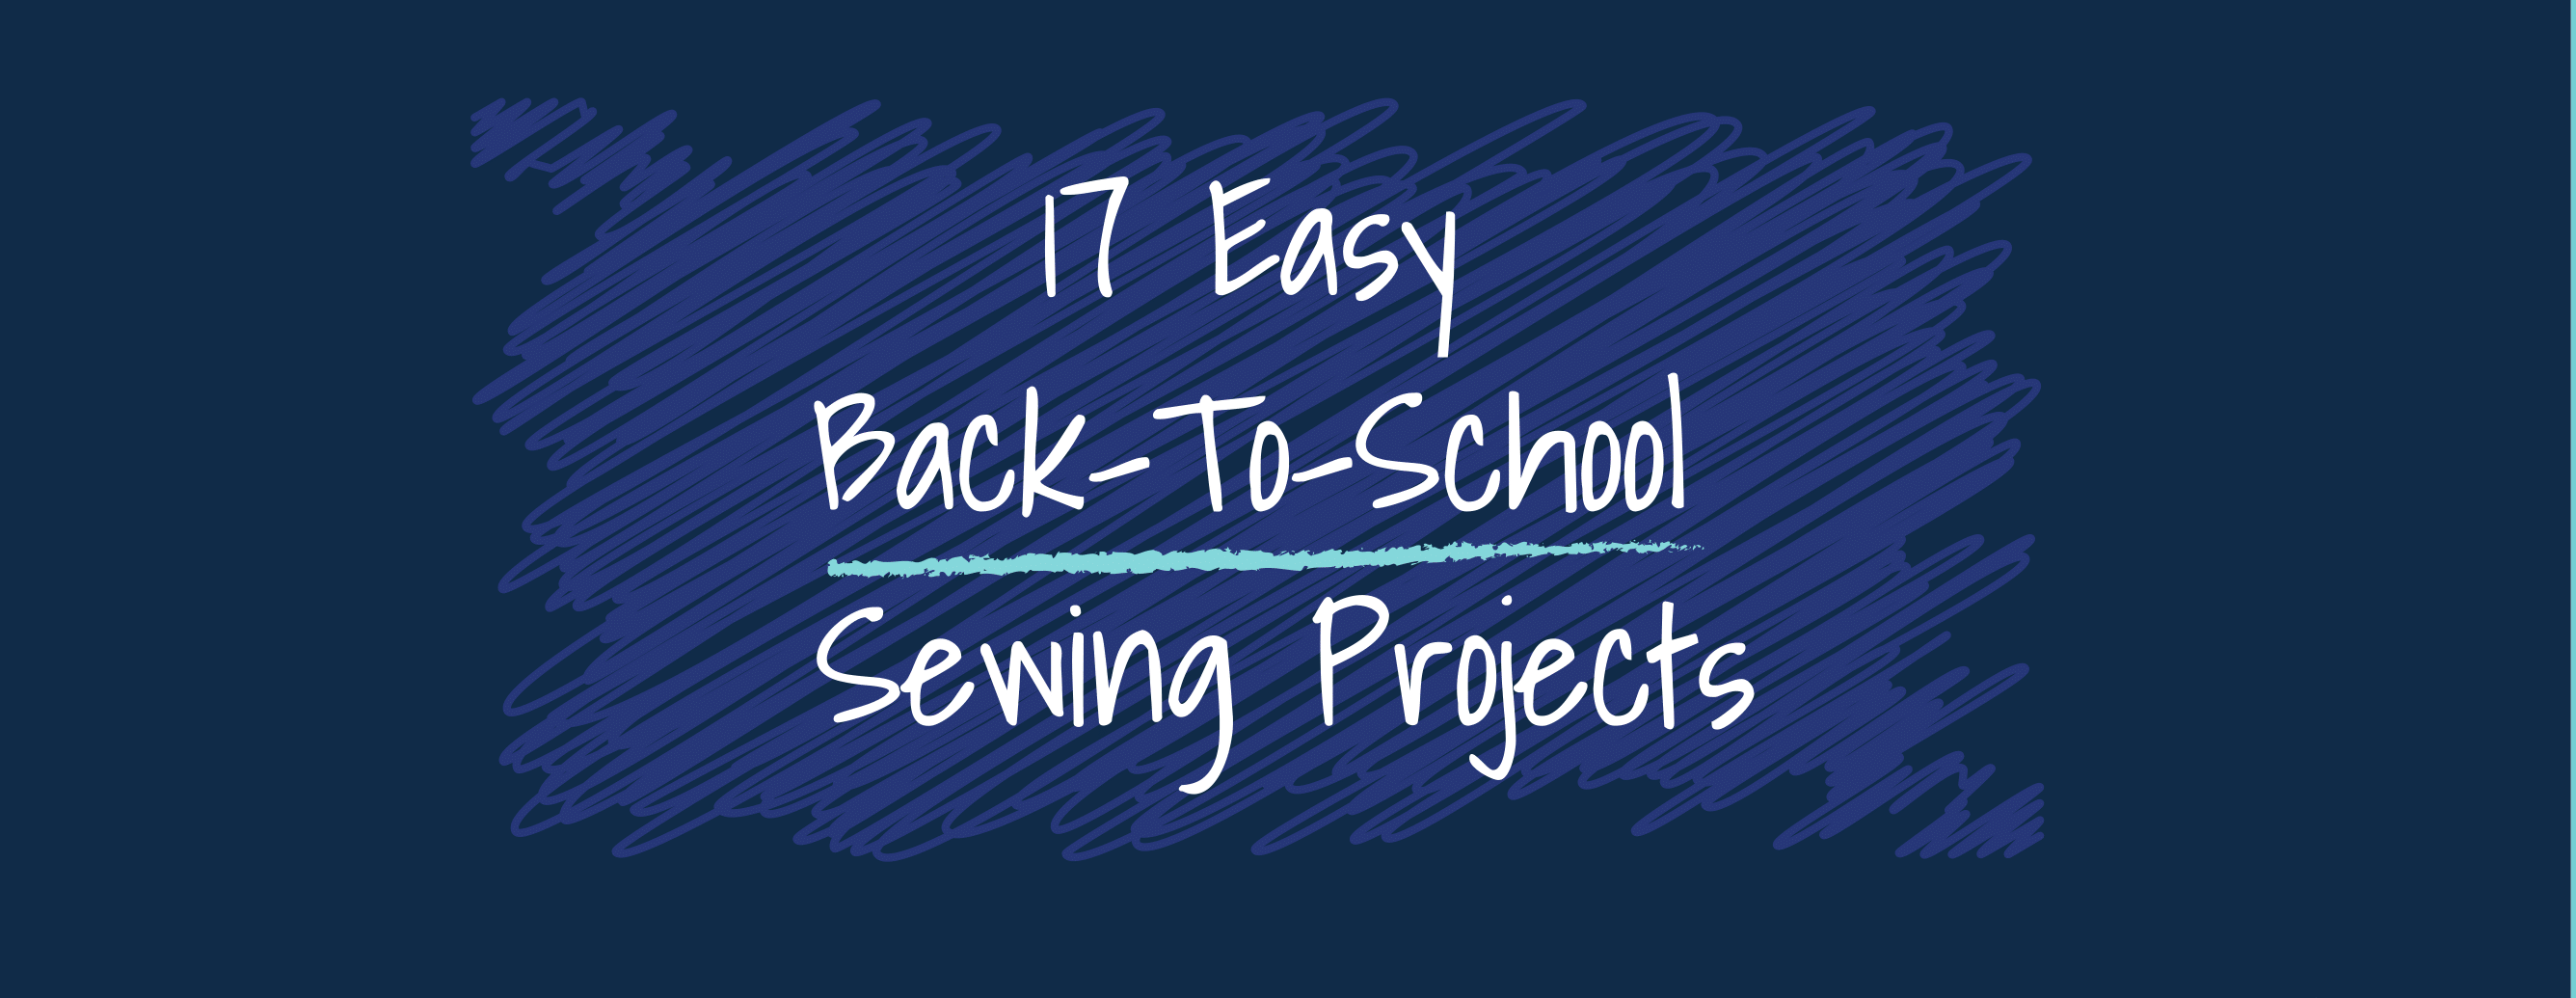 17 Easy Back-To-School Sewing Projects